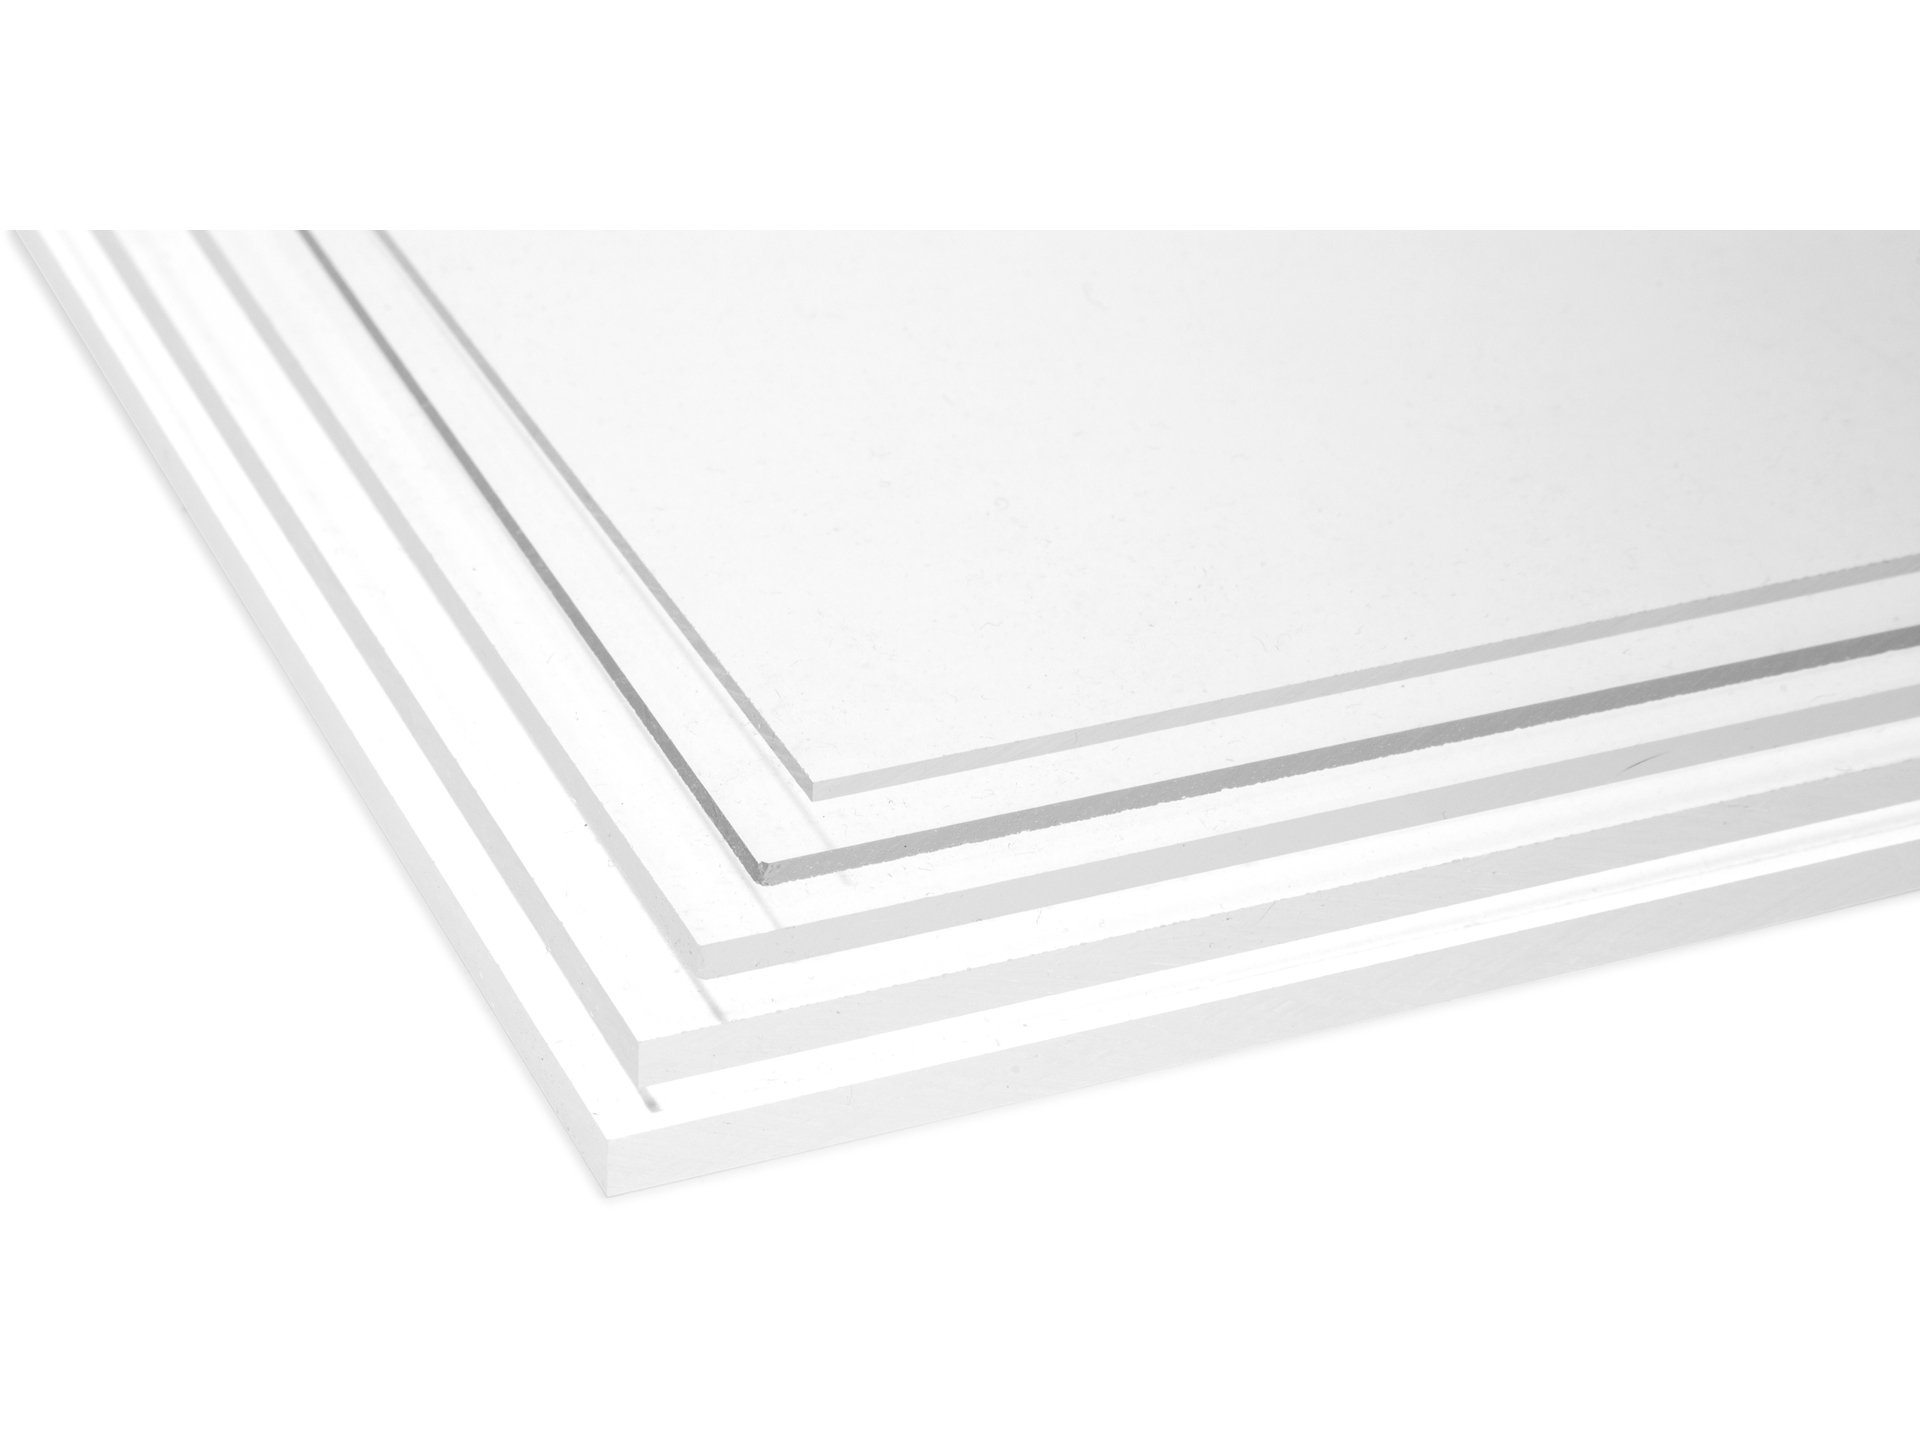 Forex Platte Buy Acrylic Glass Xt Sheet Transparent, Colourless As Custom Cutting Or Standard Format Online At Modulor